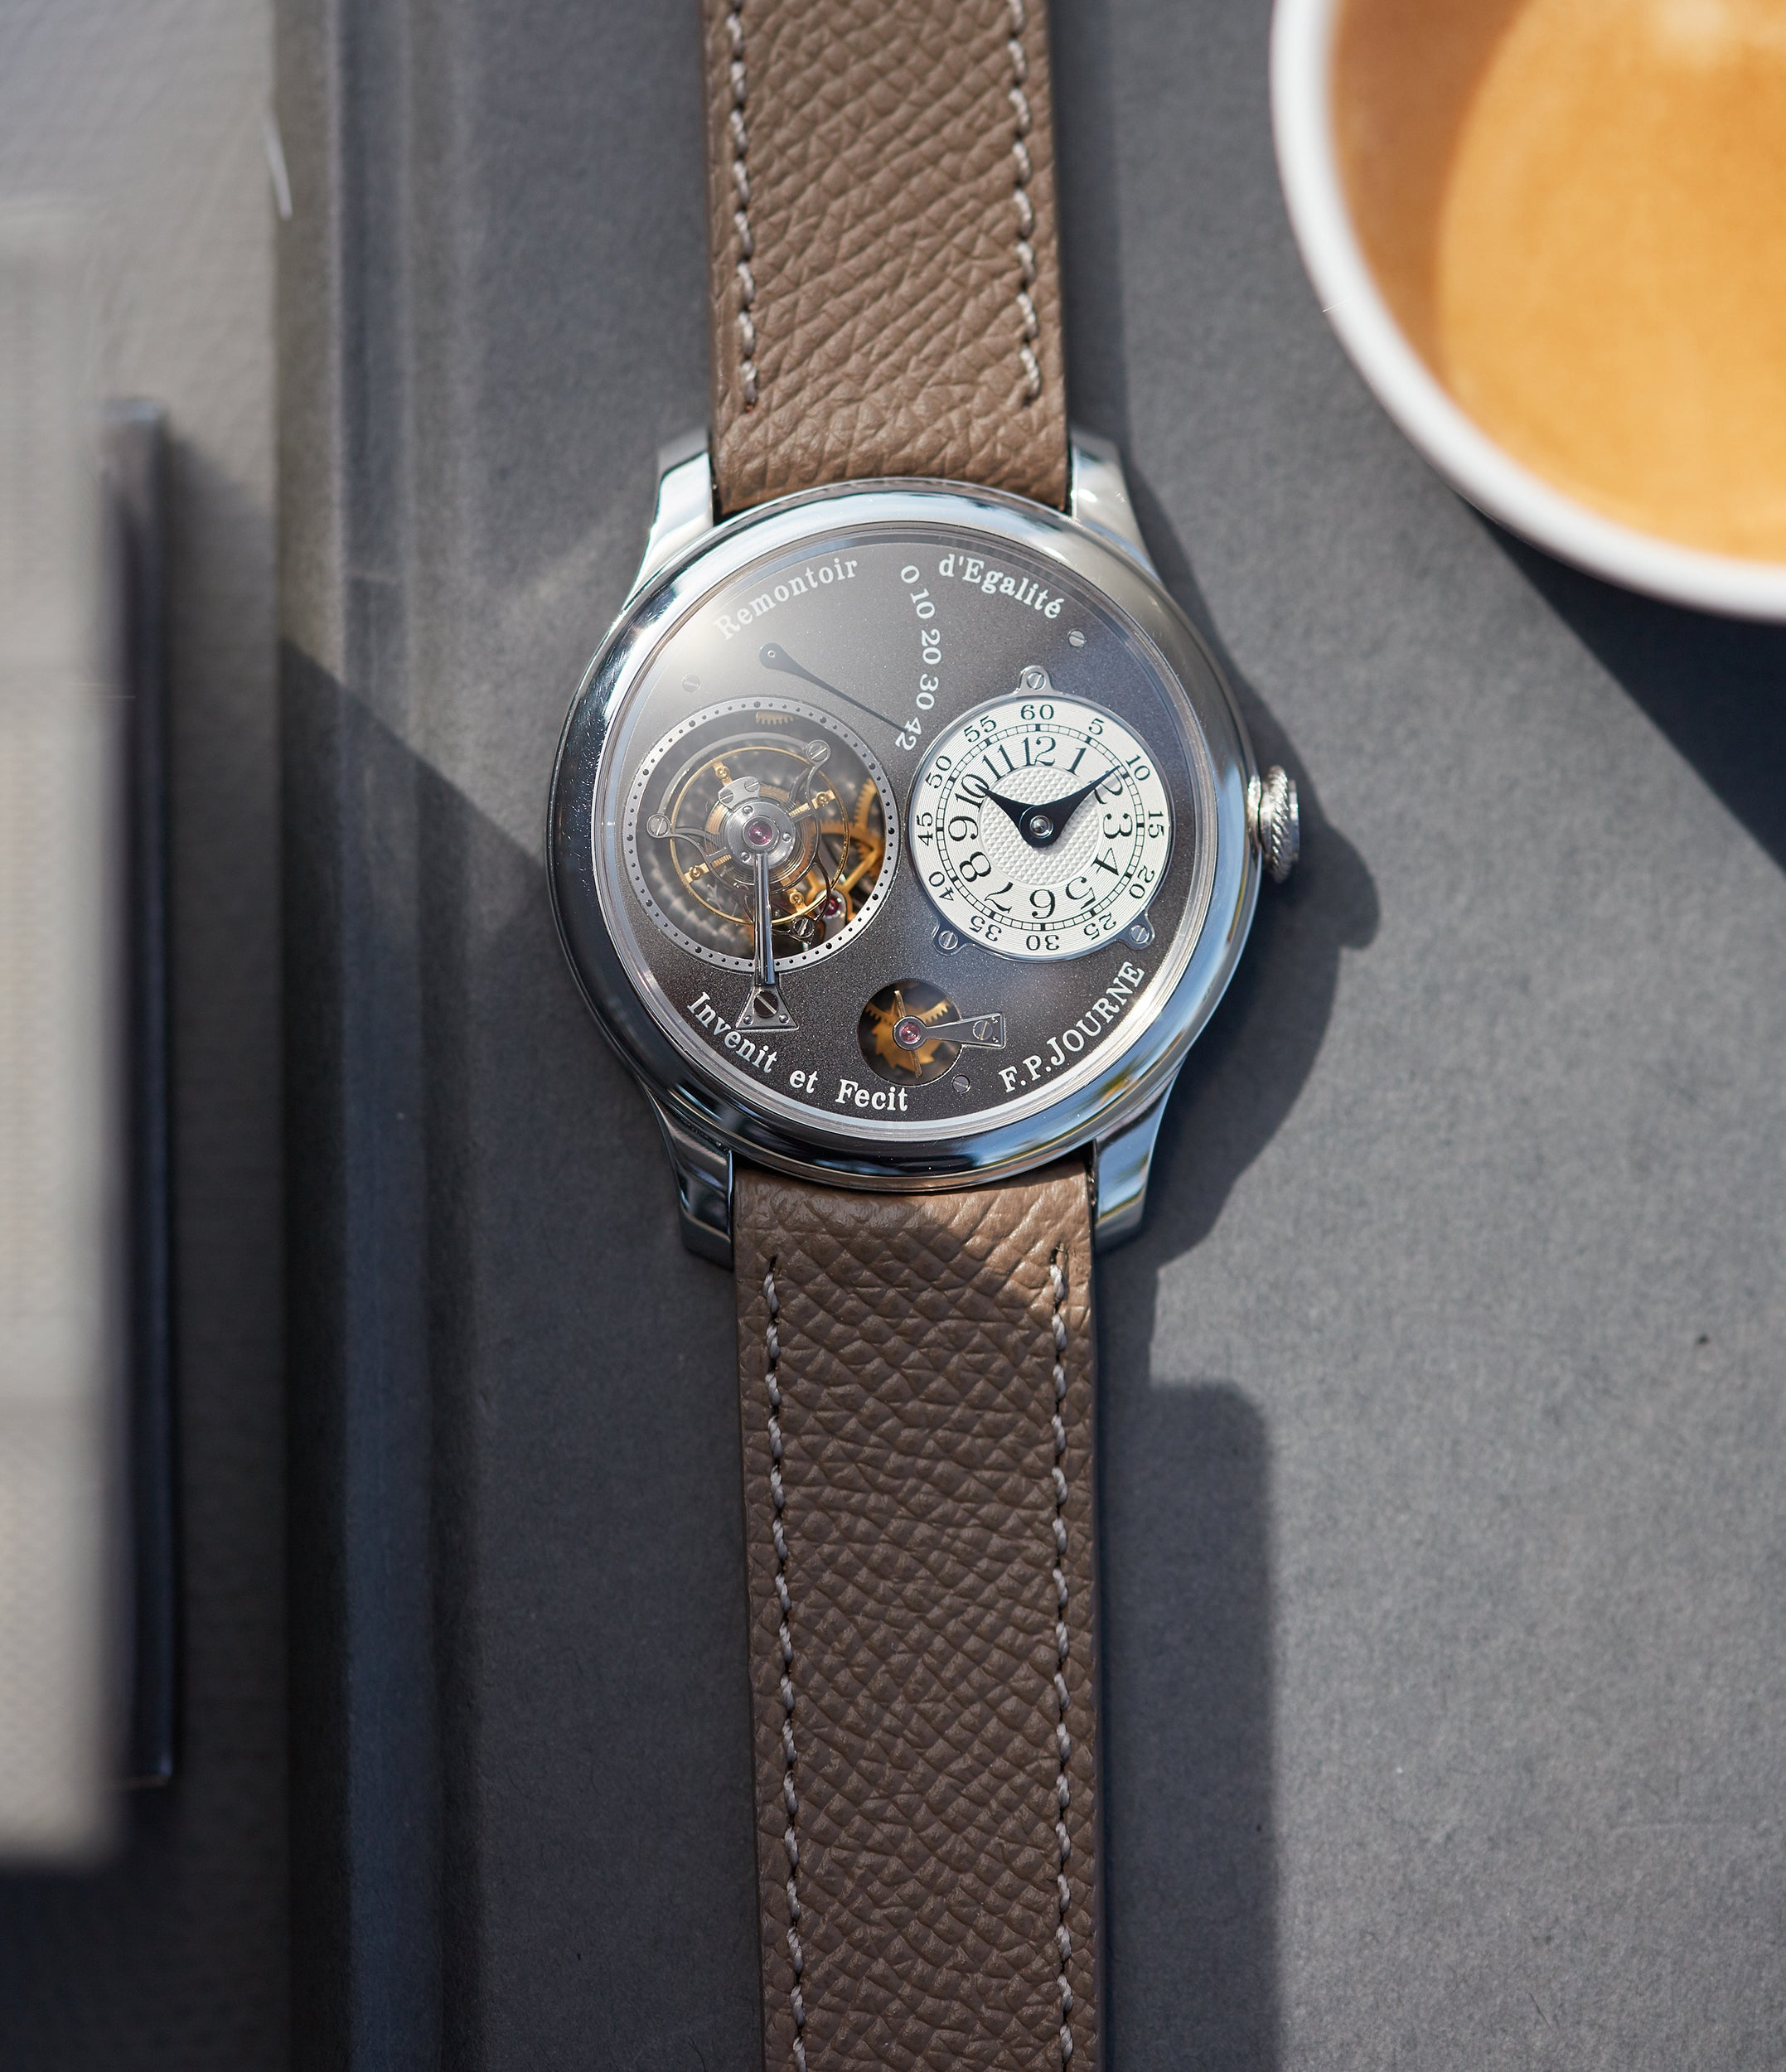 for sale F. P. Journe Tourbillon Remontoire Souverain rhutenium dial brass movement pre-owned watch at A Collected Man London specialist independent watchmakers